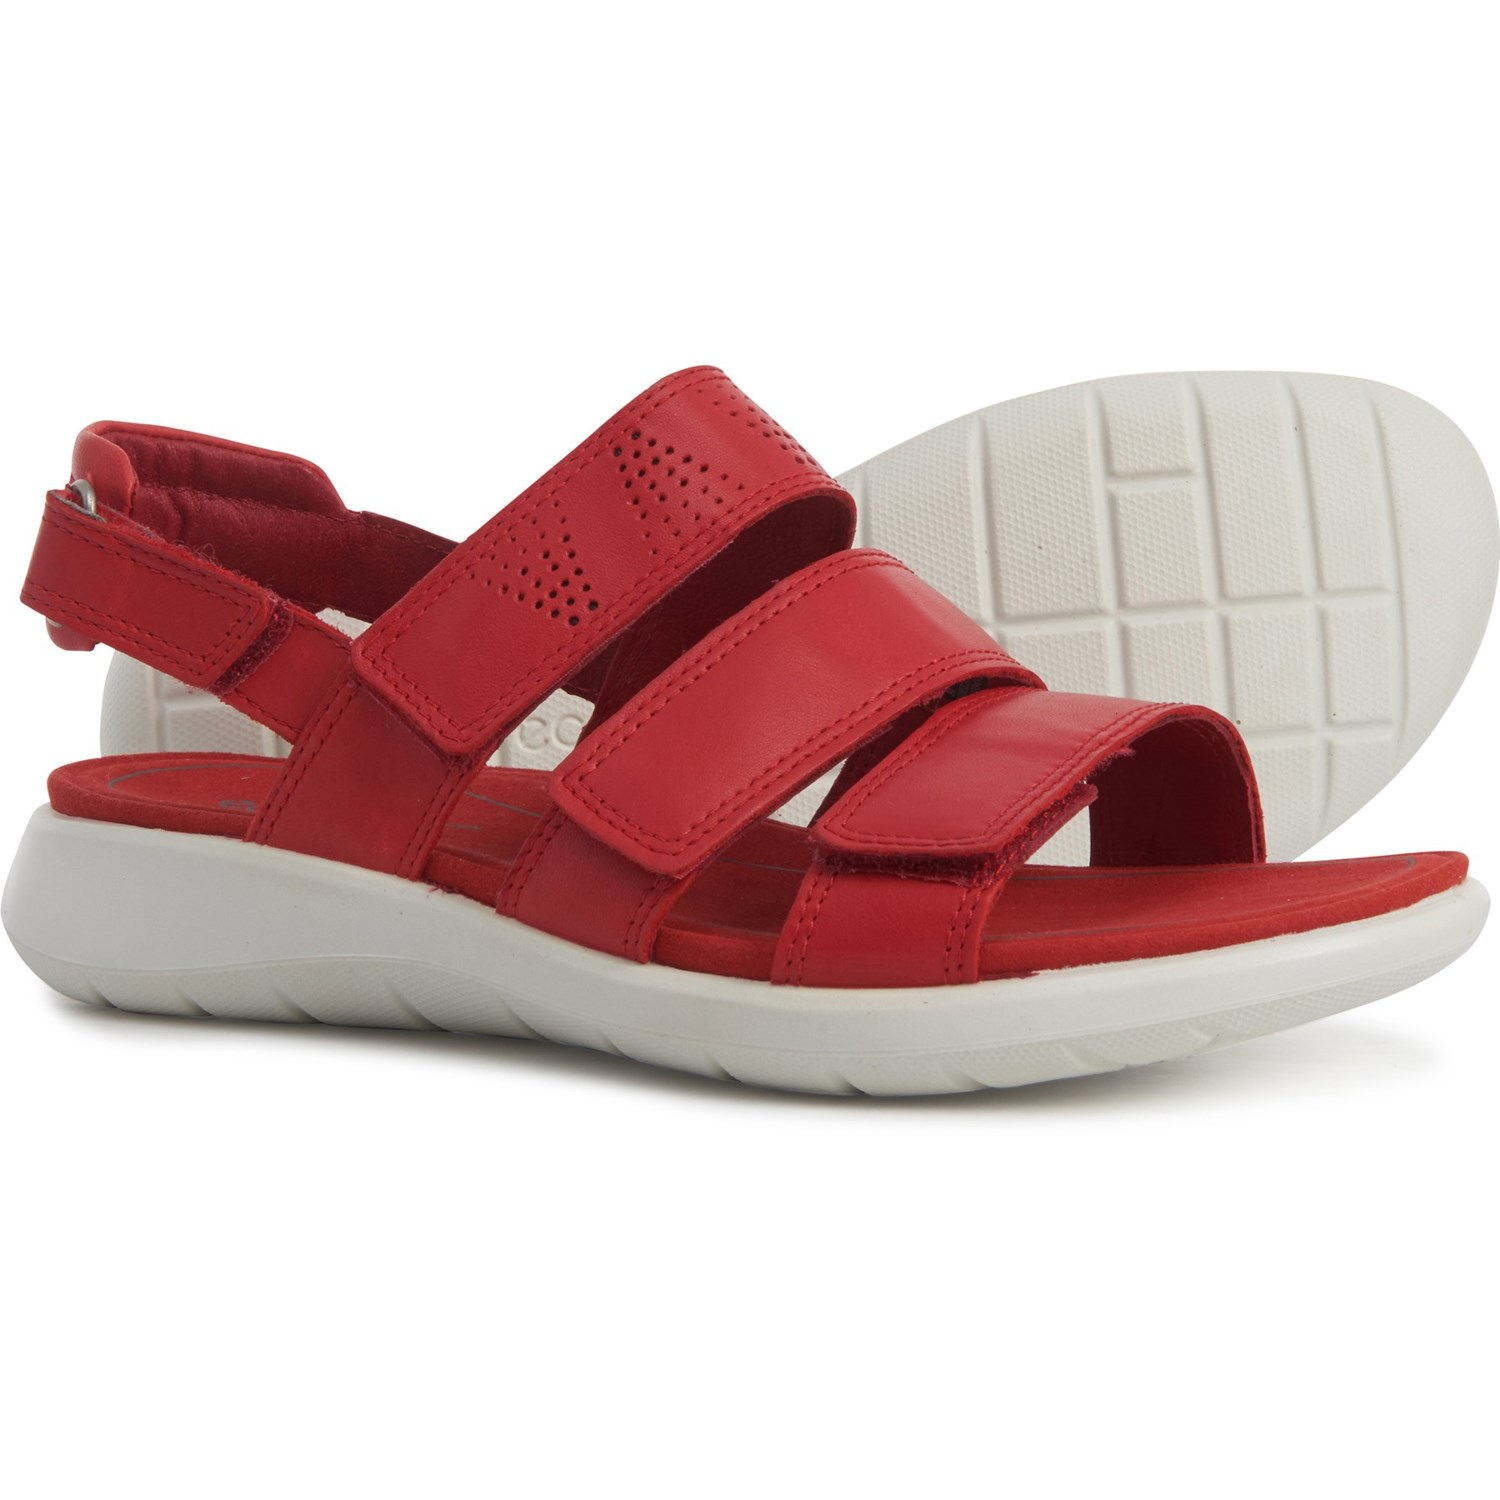 ECCO Soft 5 Sandals (For Women) Save 65%